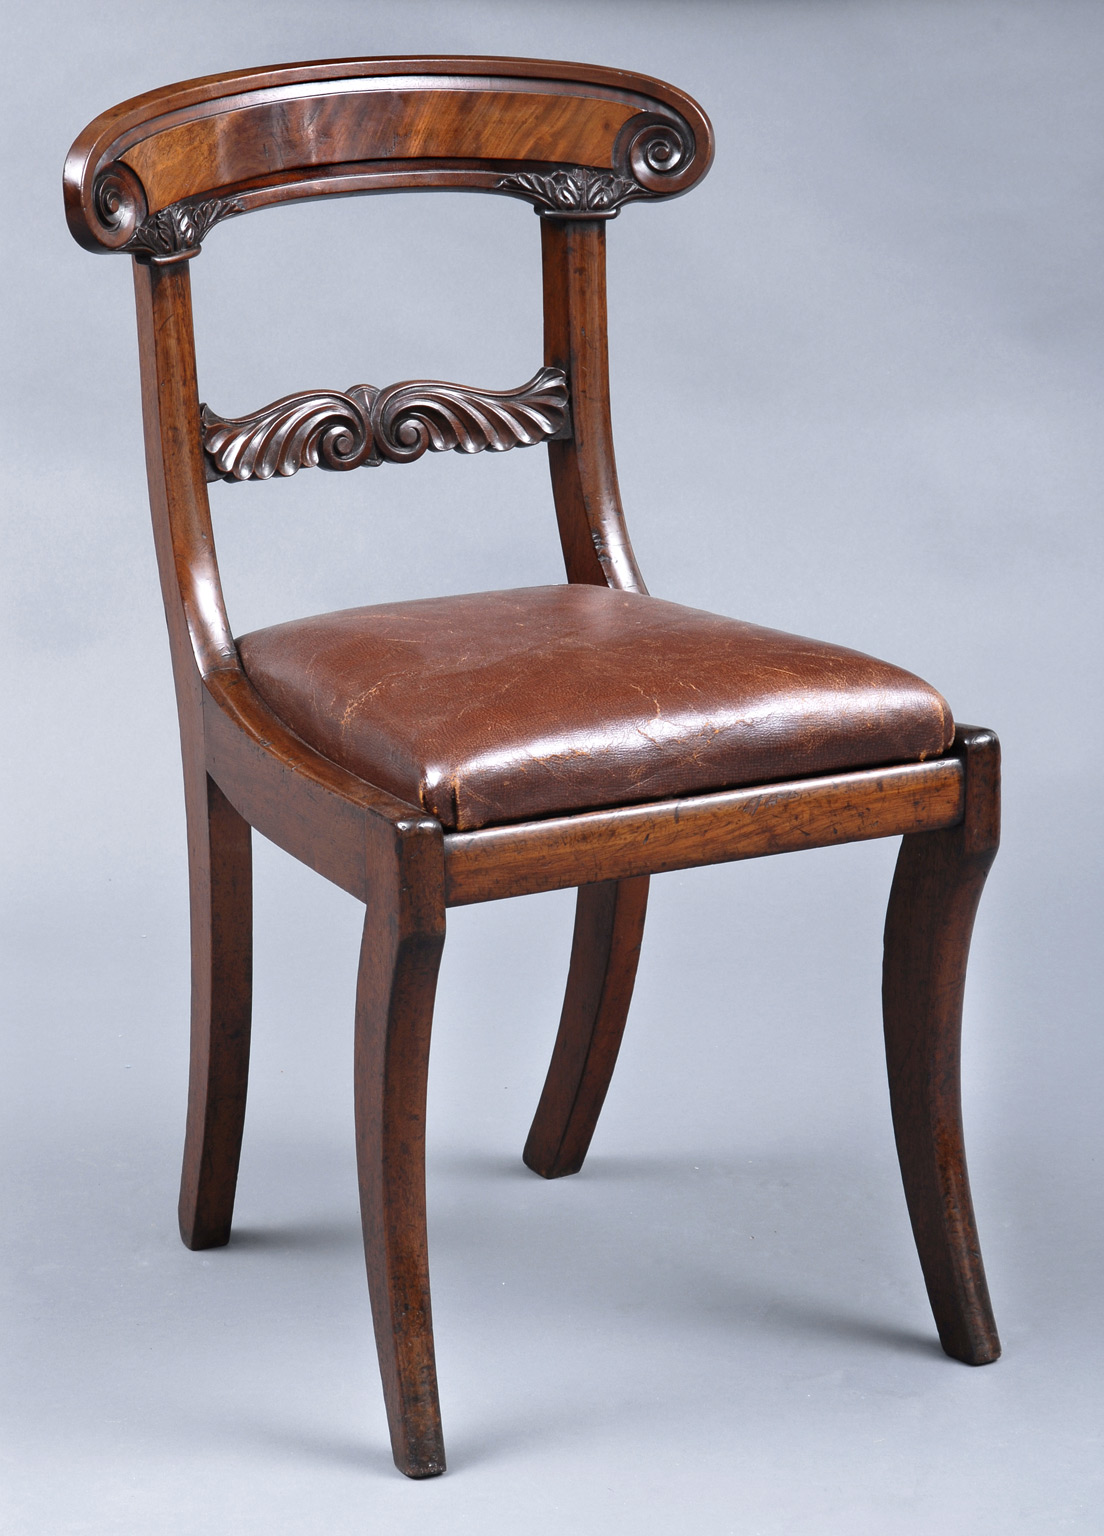 Antique Chair William Iv English Antique Mahogany Side Chair Antique